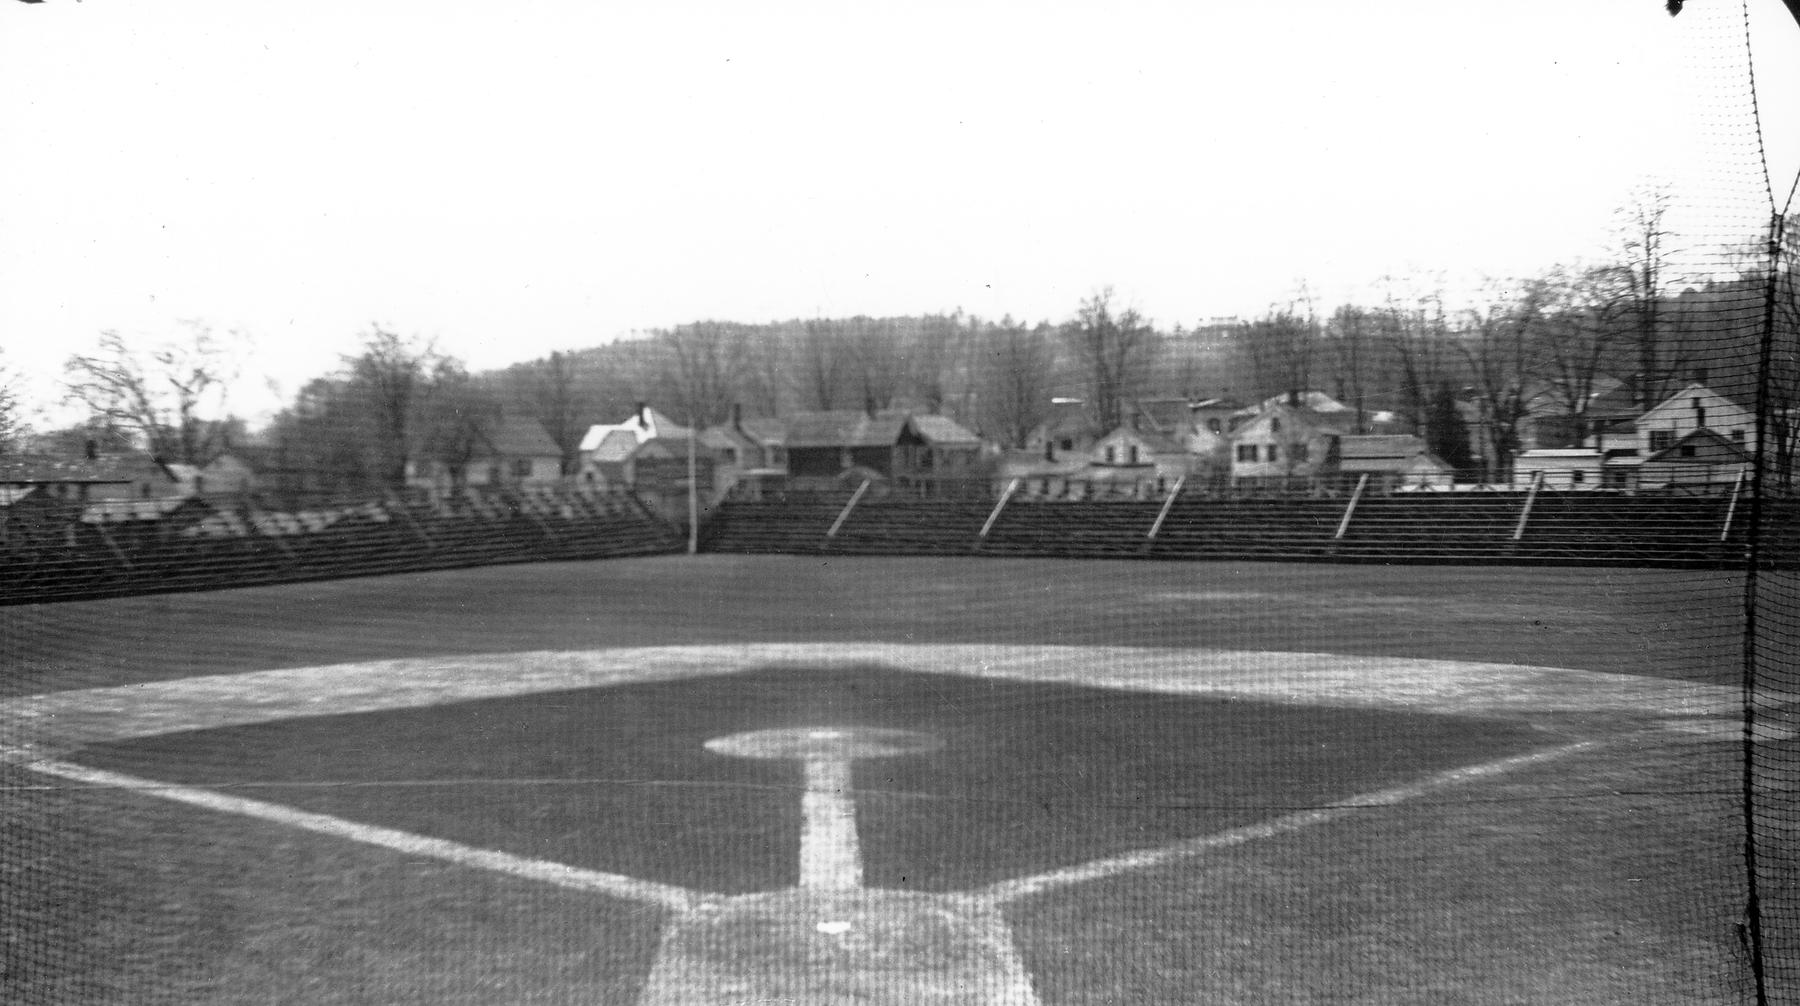 Cooperstown's Doubleday Field sits ready for the June 12, 1939, game as part of the inaugural Hall of Fame Weekend. (Homer Osterhoudt/National Baseball Hall of Fame and Museum)